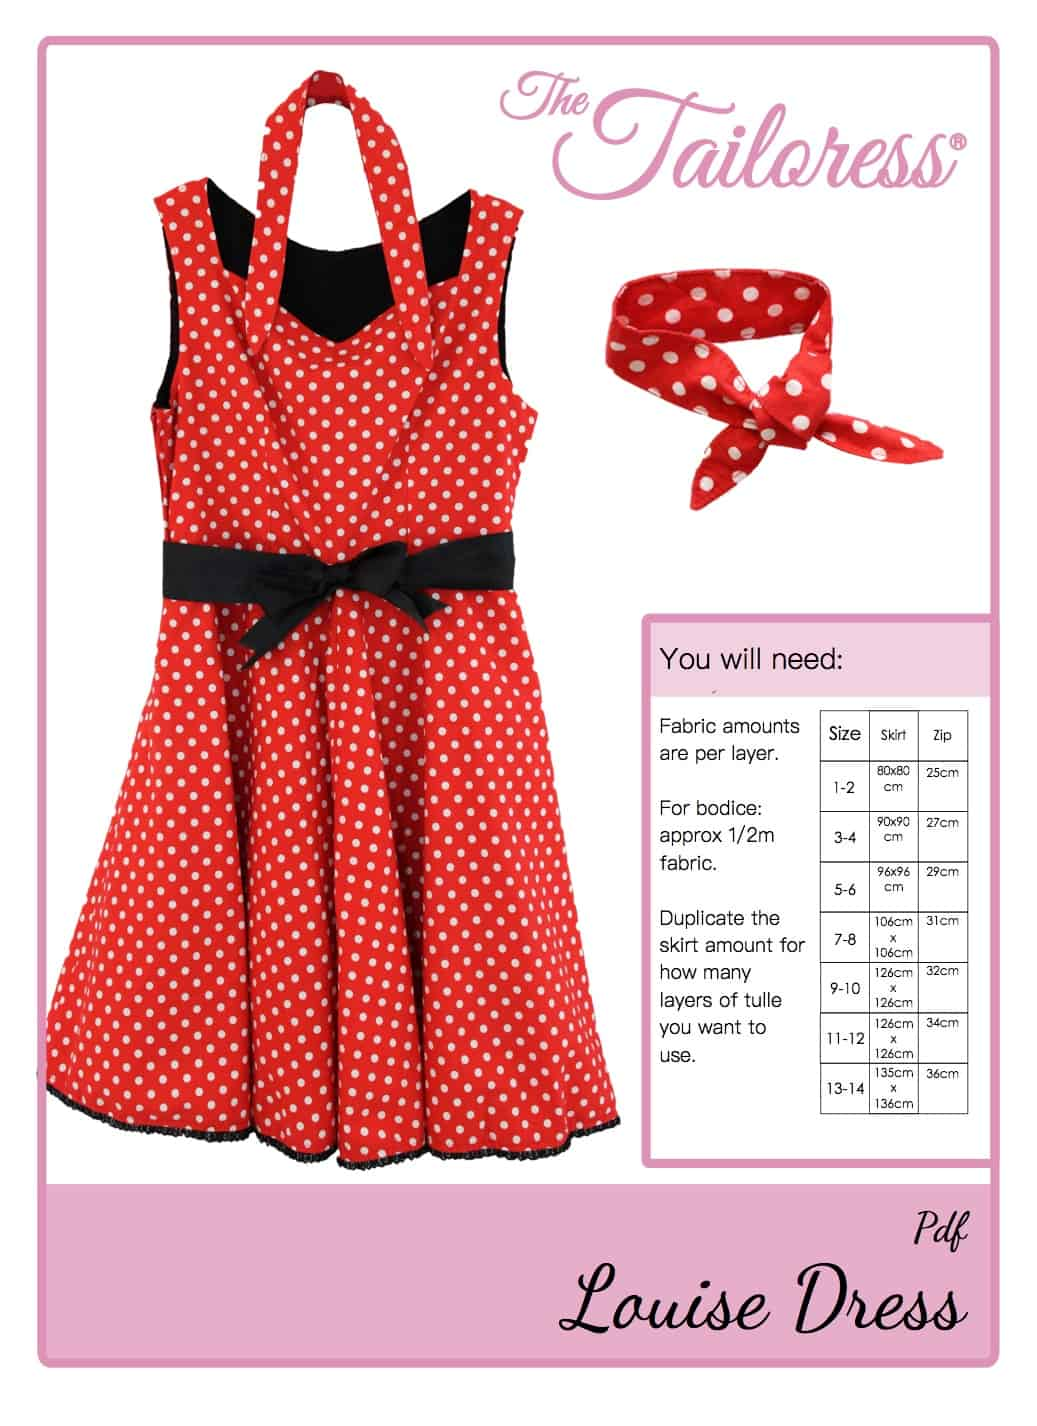 The Tailoress PDF Sewing Patterns - Louise Dress Tutorial